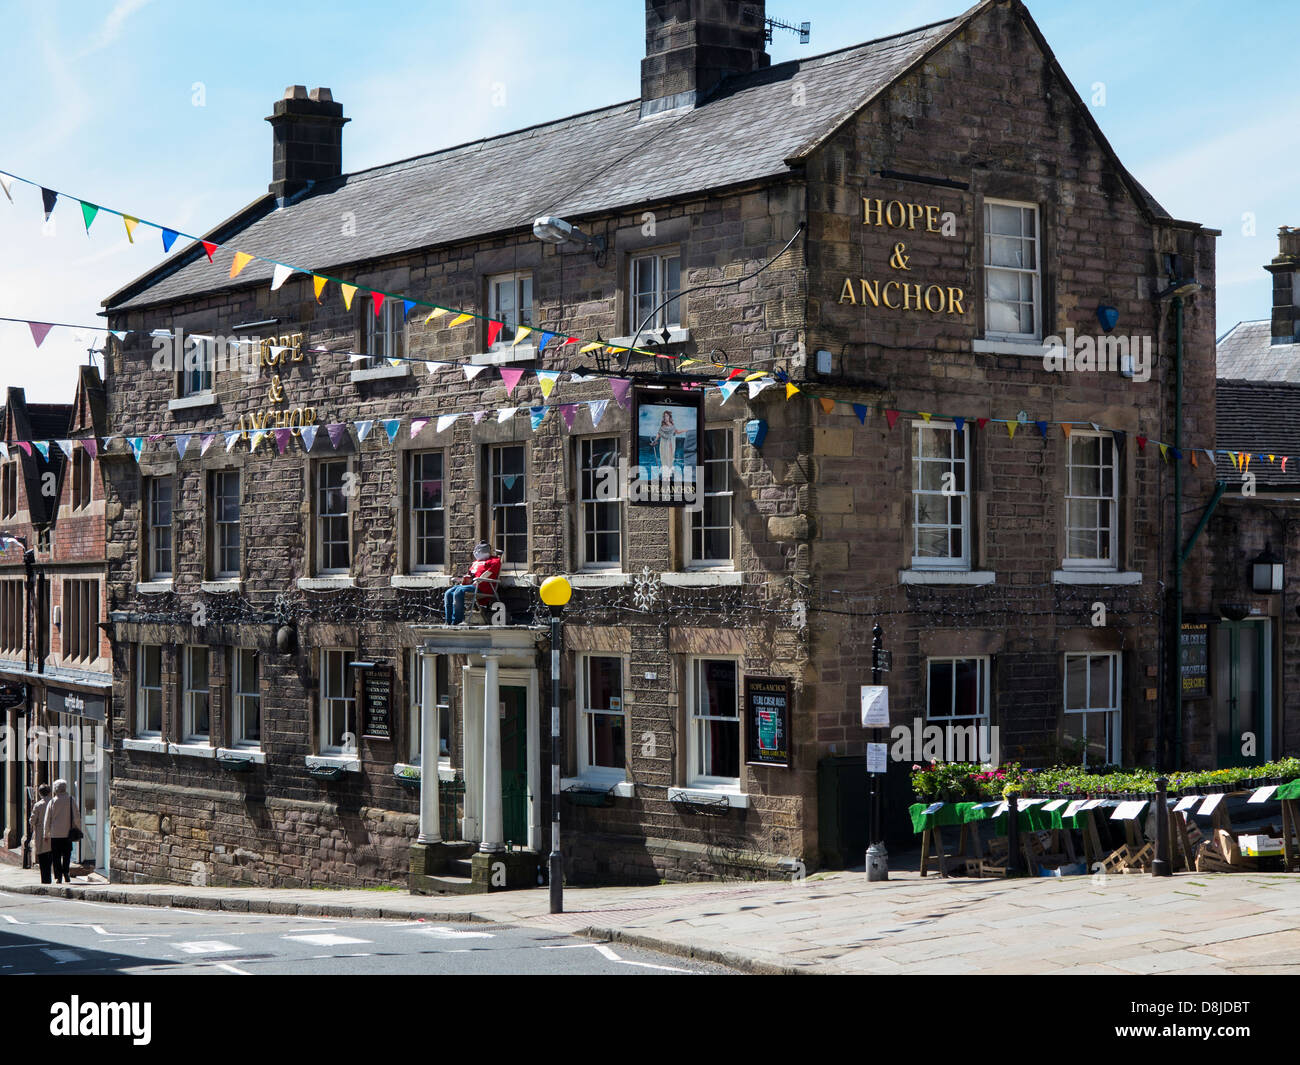 Hope and Anchor pub in Wirksworth, Derbyshire, England. - Stock Image